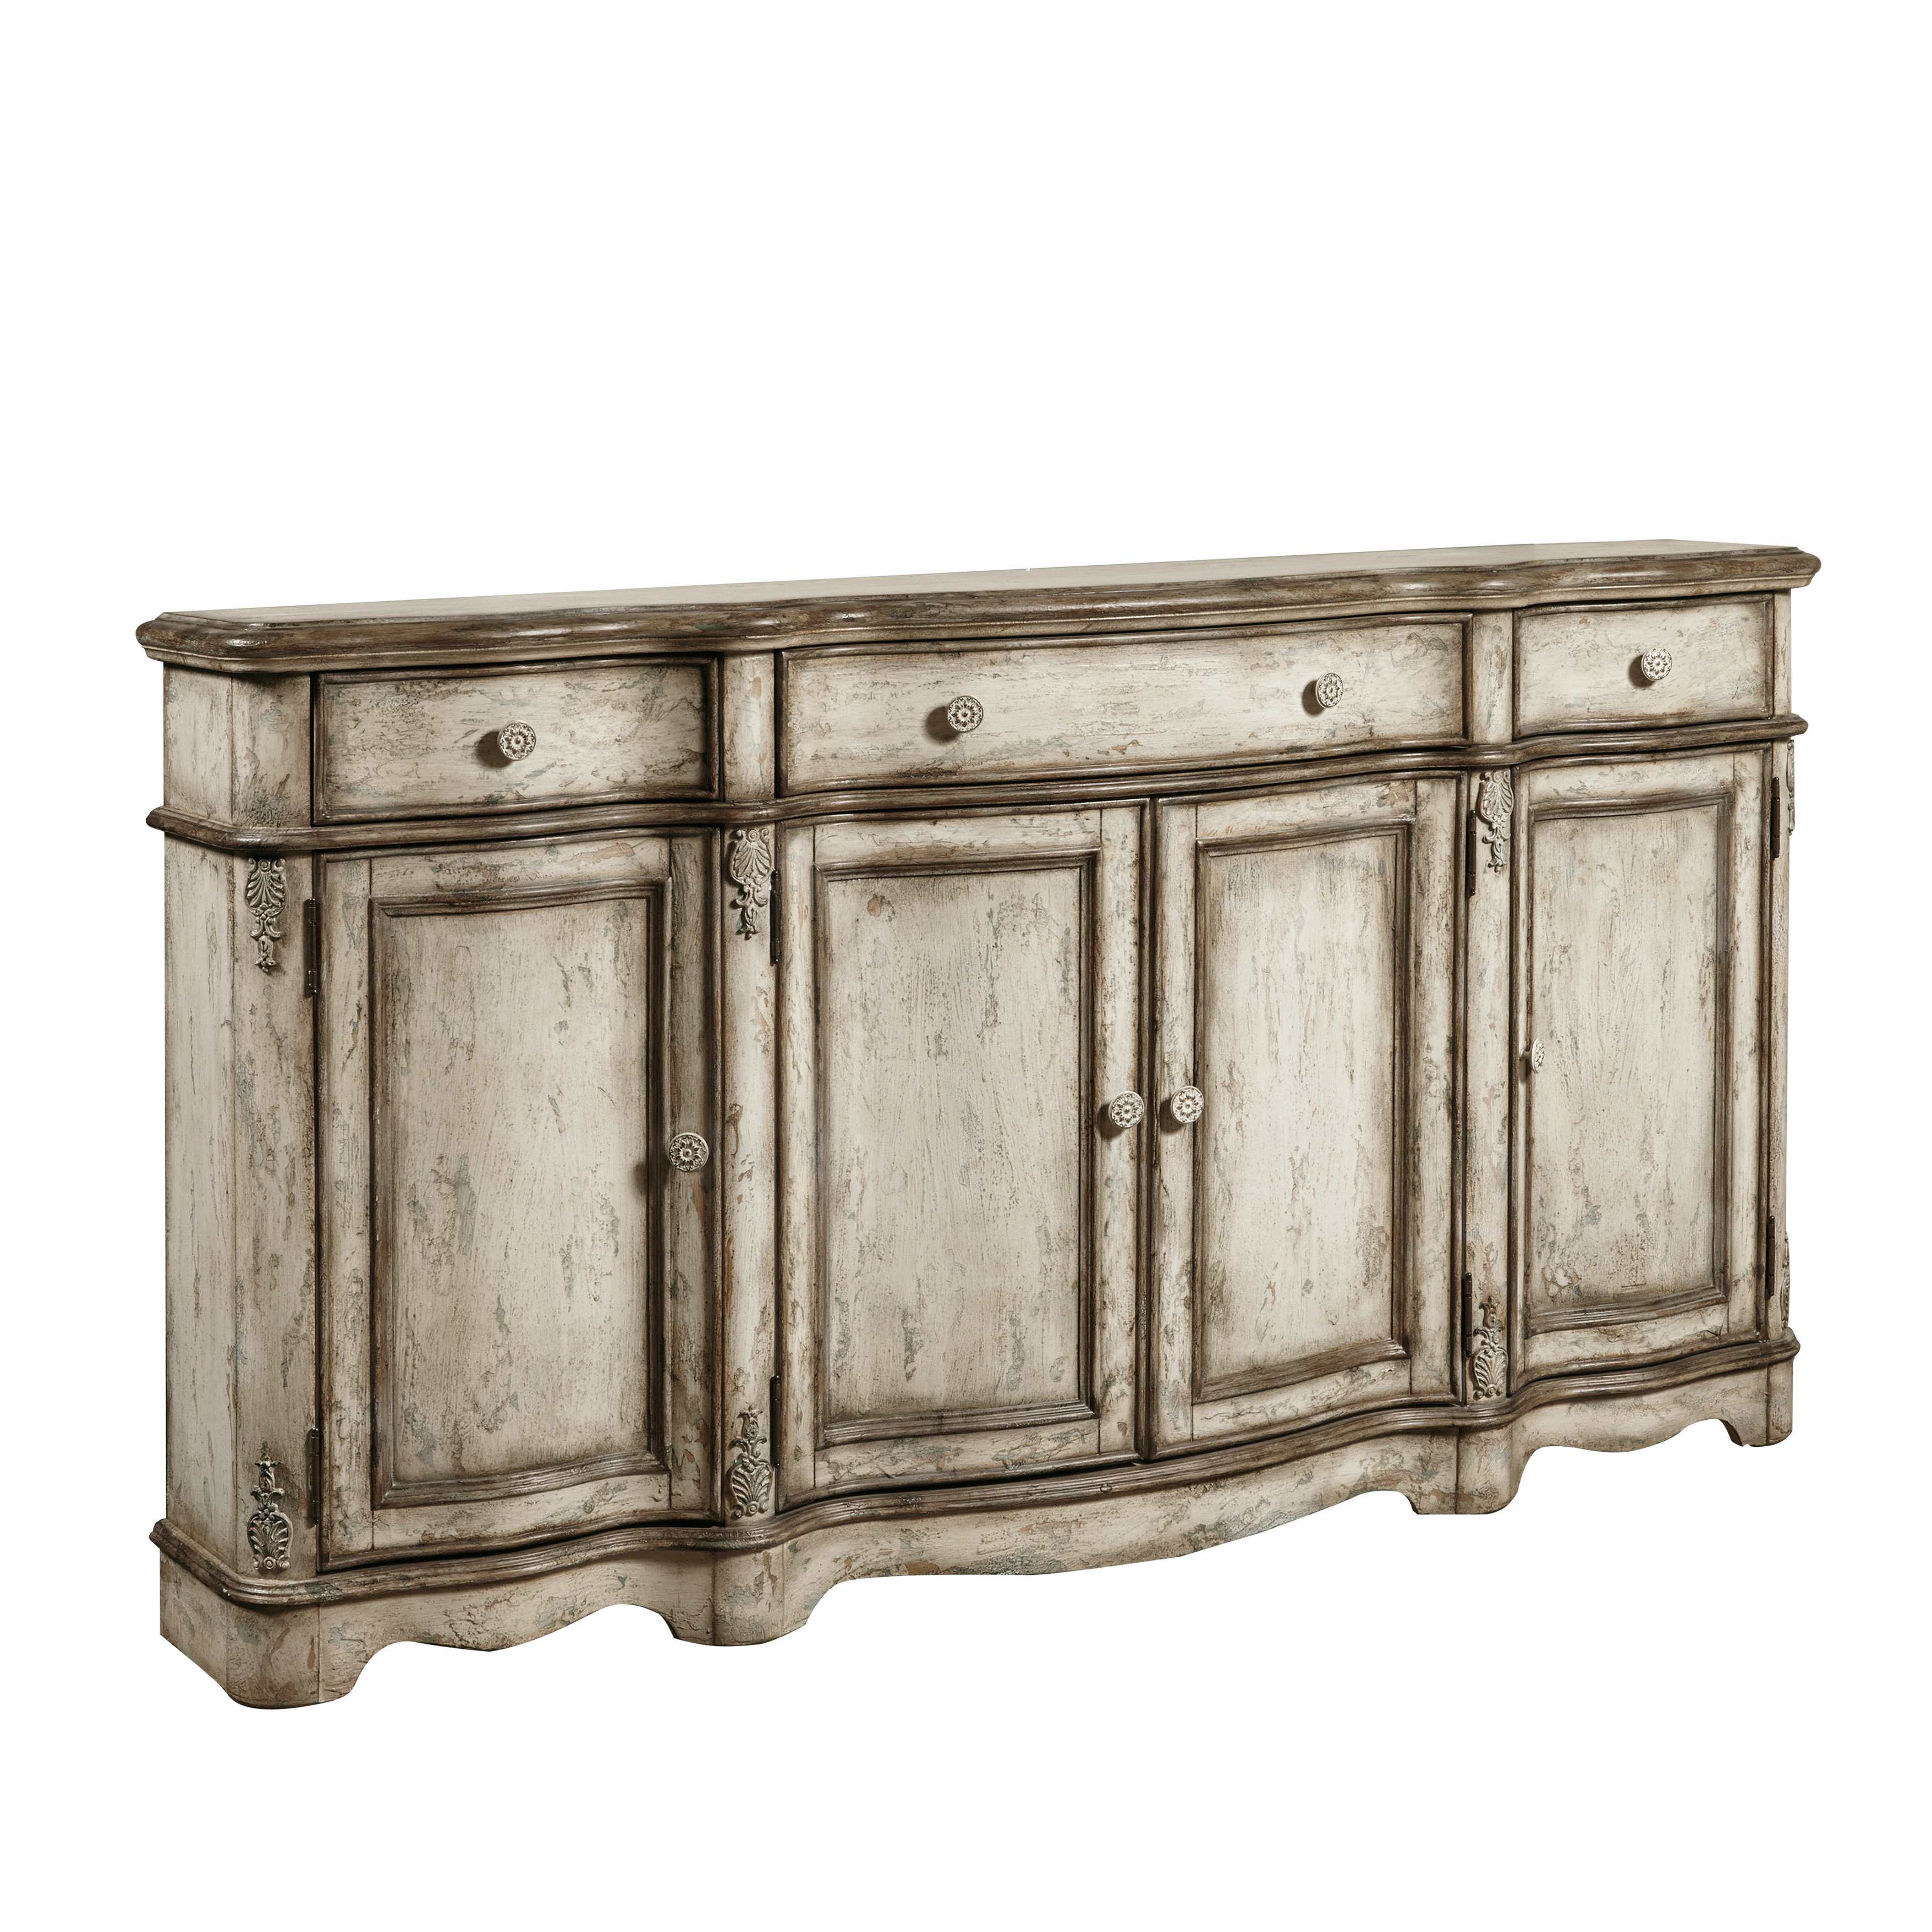 Fashionable Bremner Credenzas Intended For Farmhouse & Rustic Sideboards & Buffets (View 10 of 20)